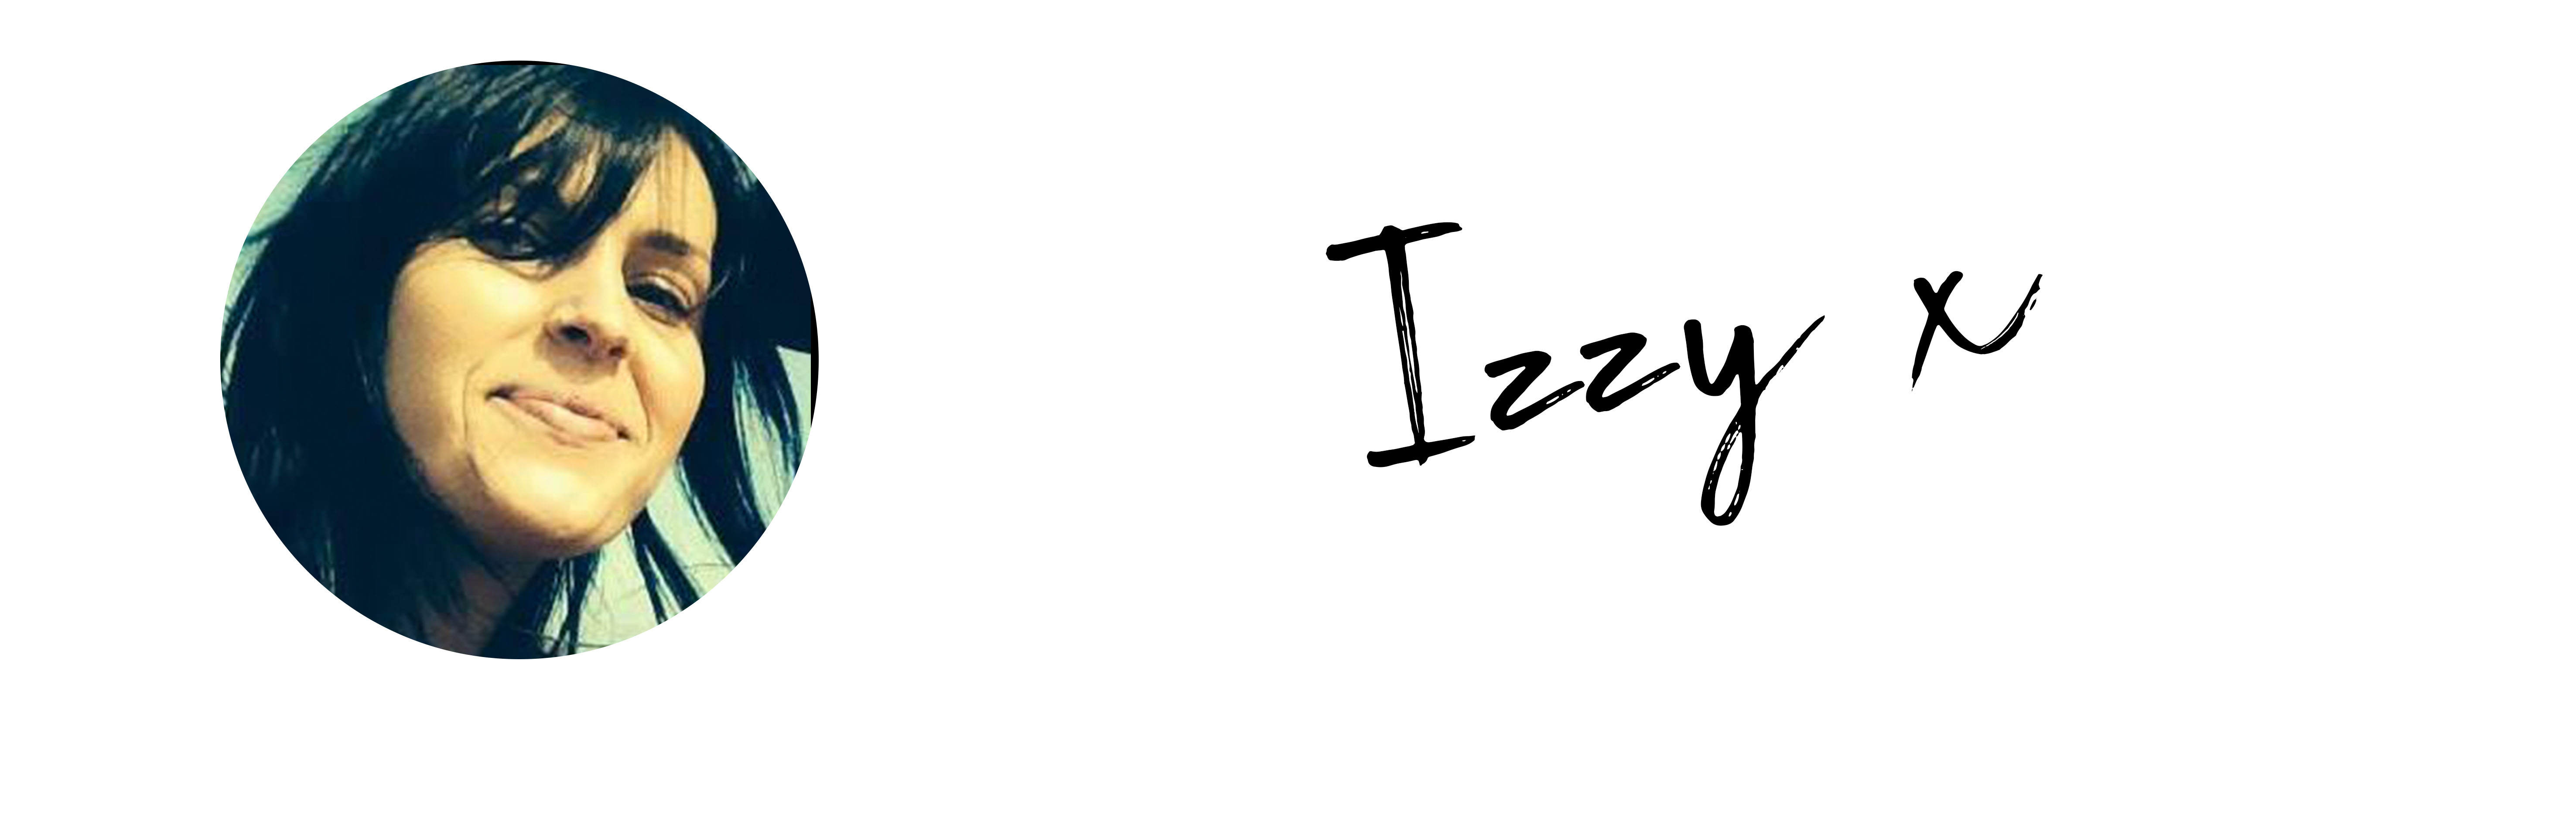 Image of blog writer, with text Izzy x